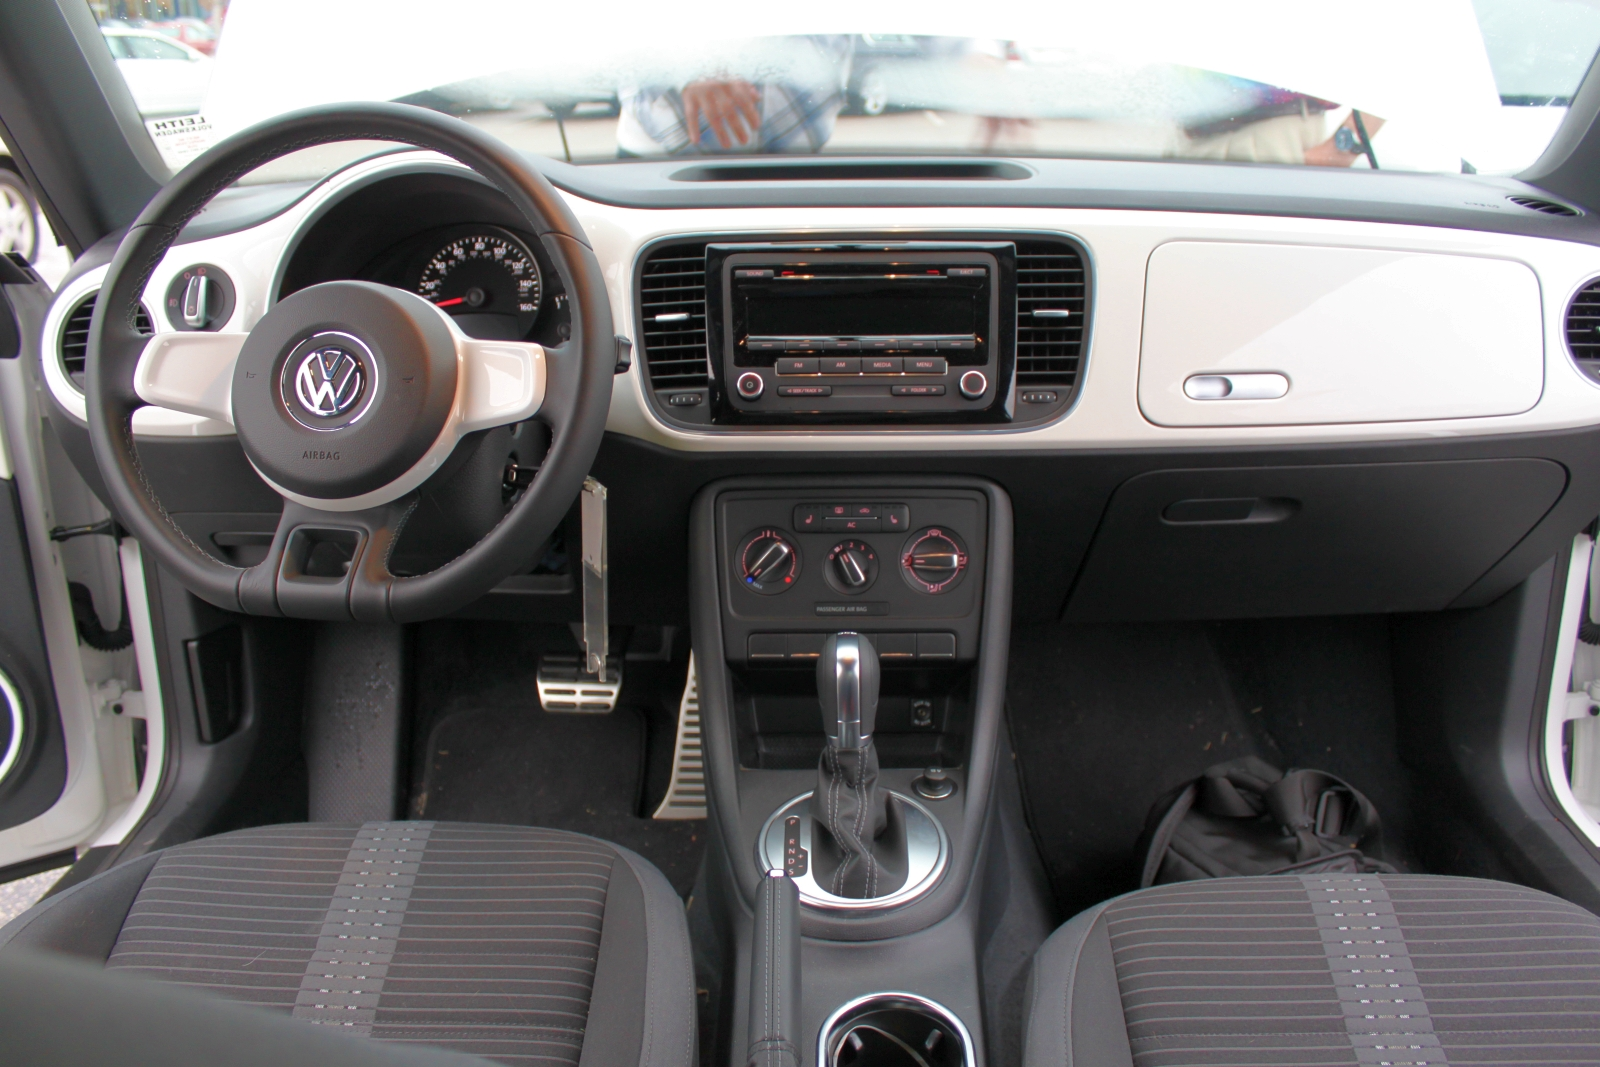 2012 volkswagen beetle turbo test drive flower vase gone in place of all the tiny buttons crowded into one small spot and a nearly unreadable gauge cluster is simplicity beautiful simplicity reviewsmspy